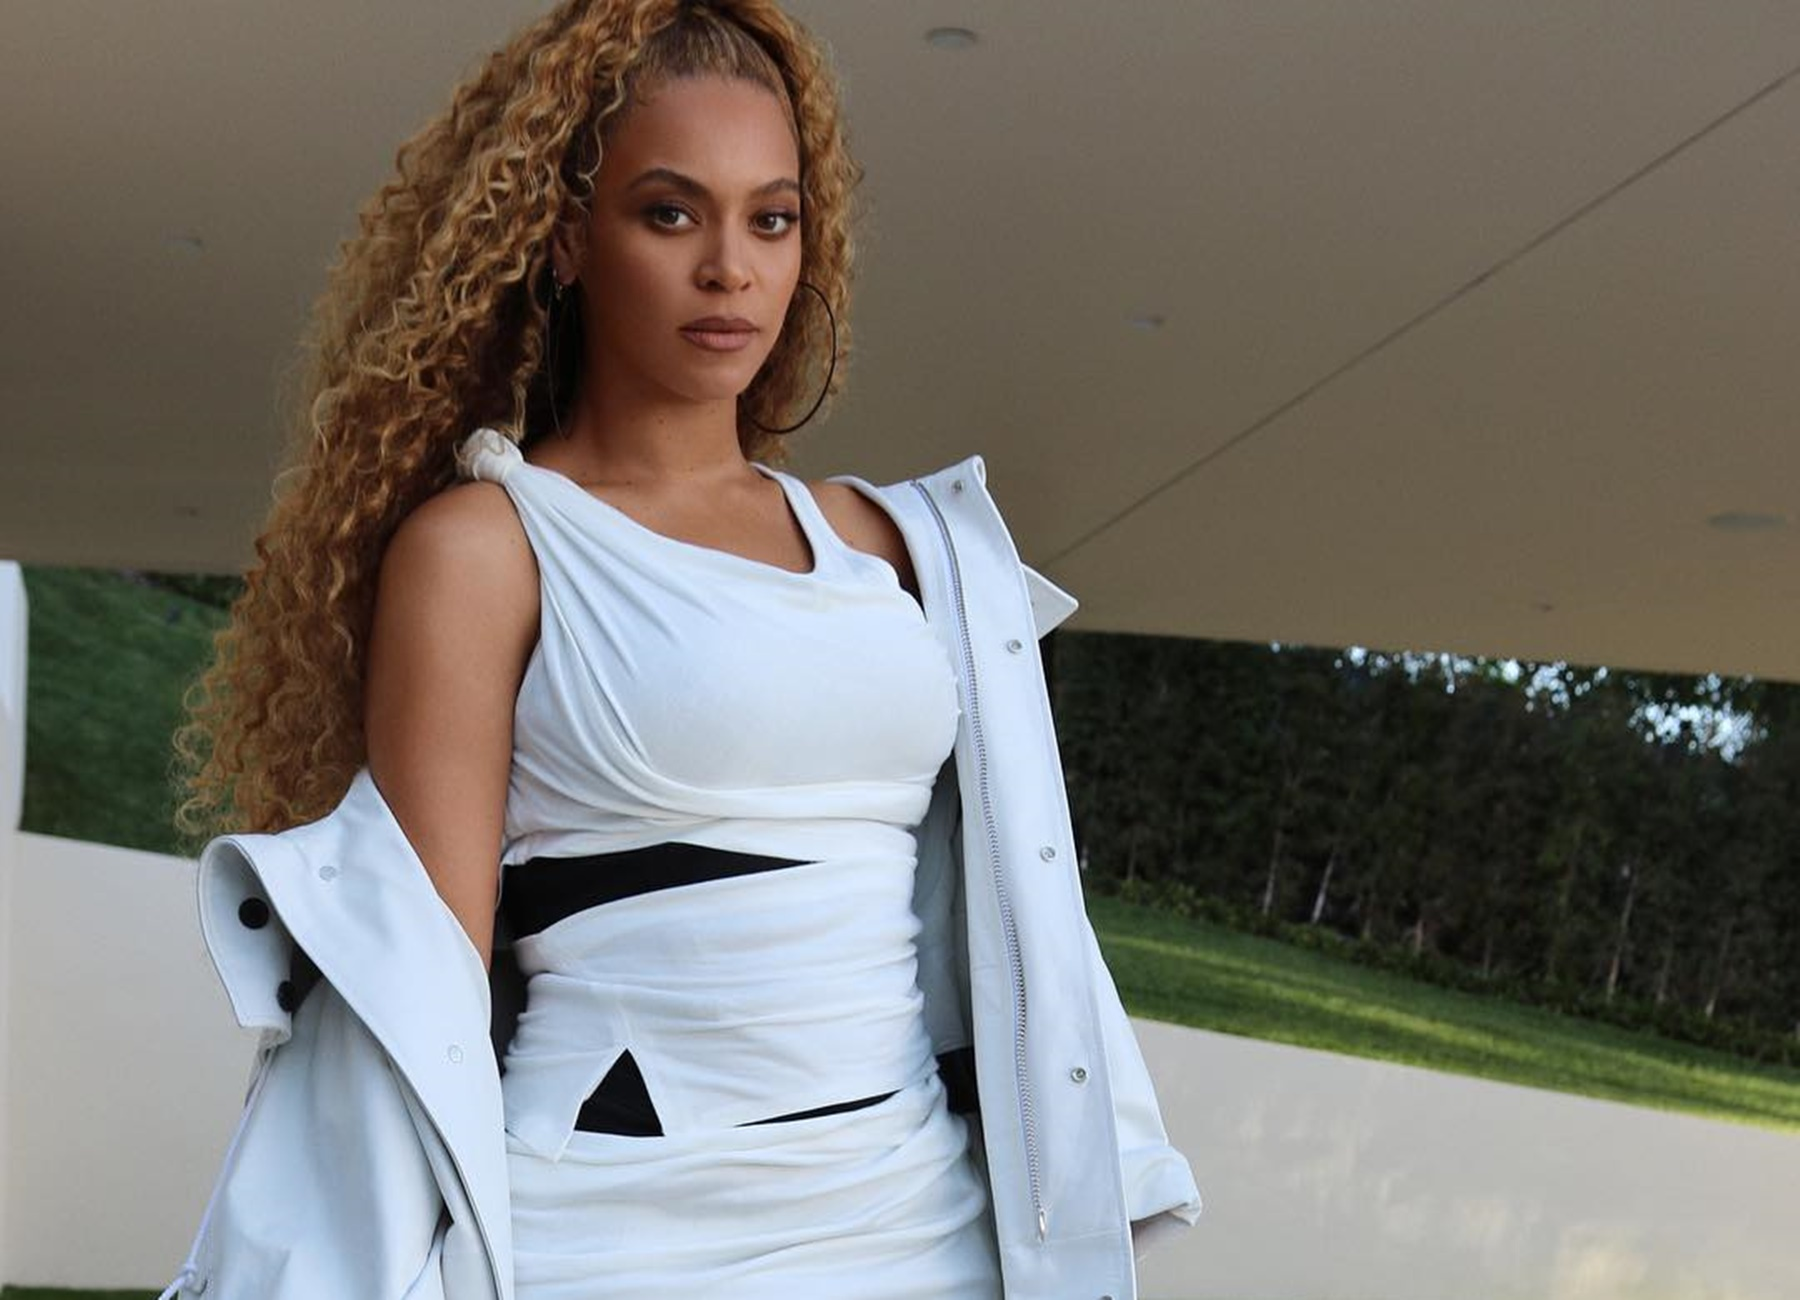 beyonce-got-turned-down-by-michael-ealy-for-this-reason-the-intruder-actor-gets-applauded-for-knowing-his-self-worth